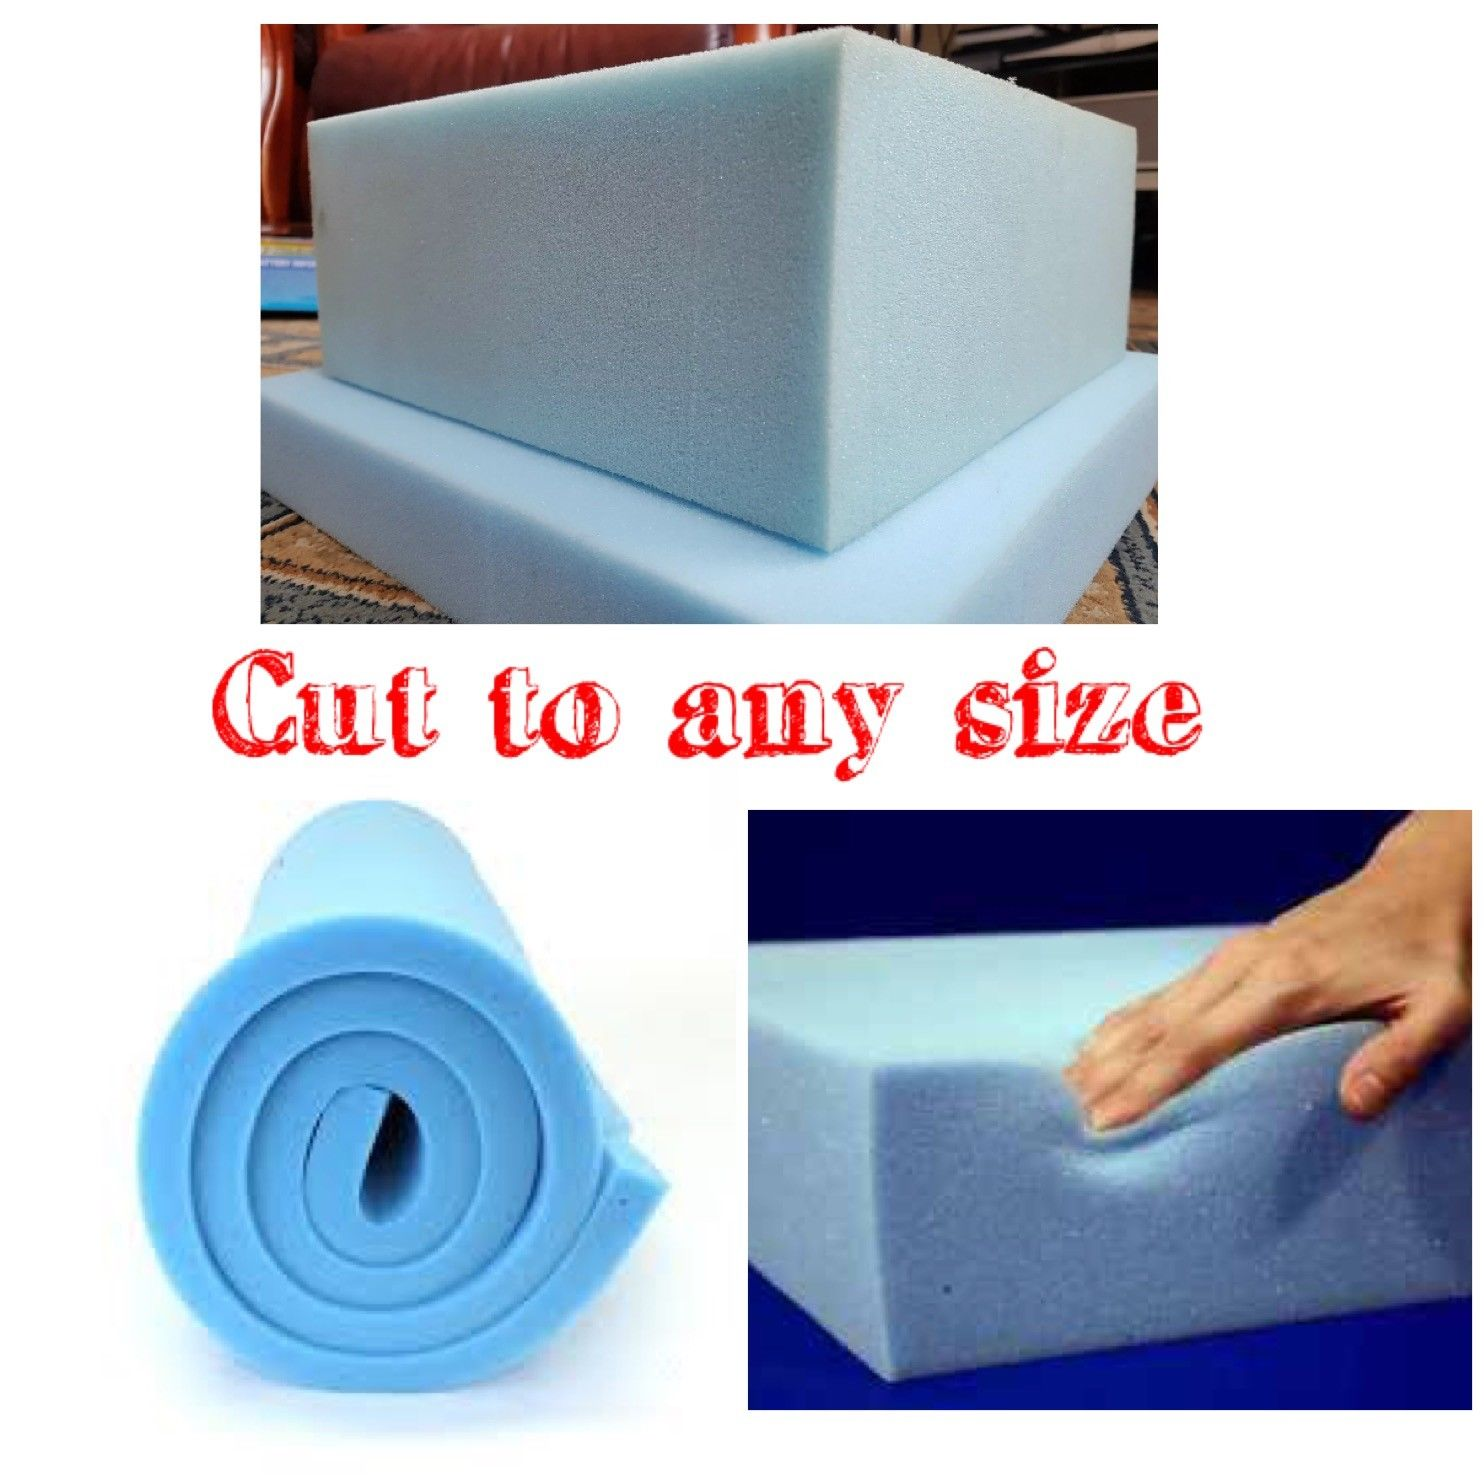 High Density Foam Cushion | High Density Upholstery Foam | High Density Seat Foam